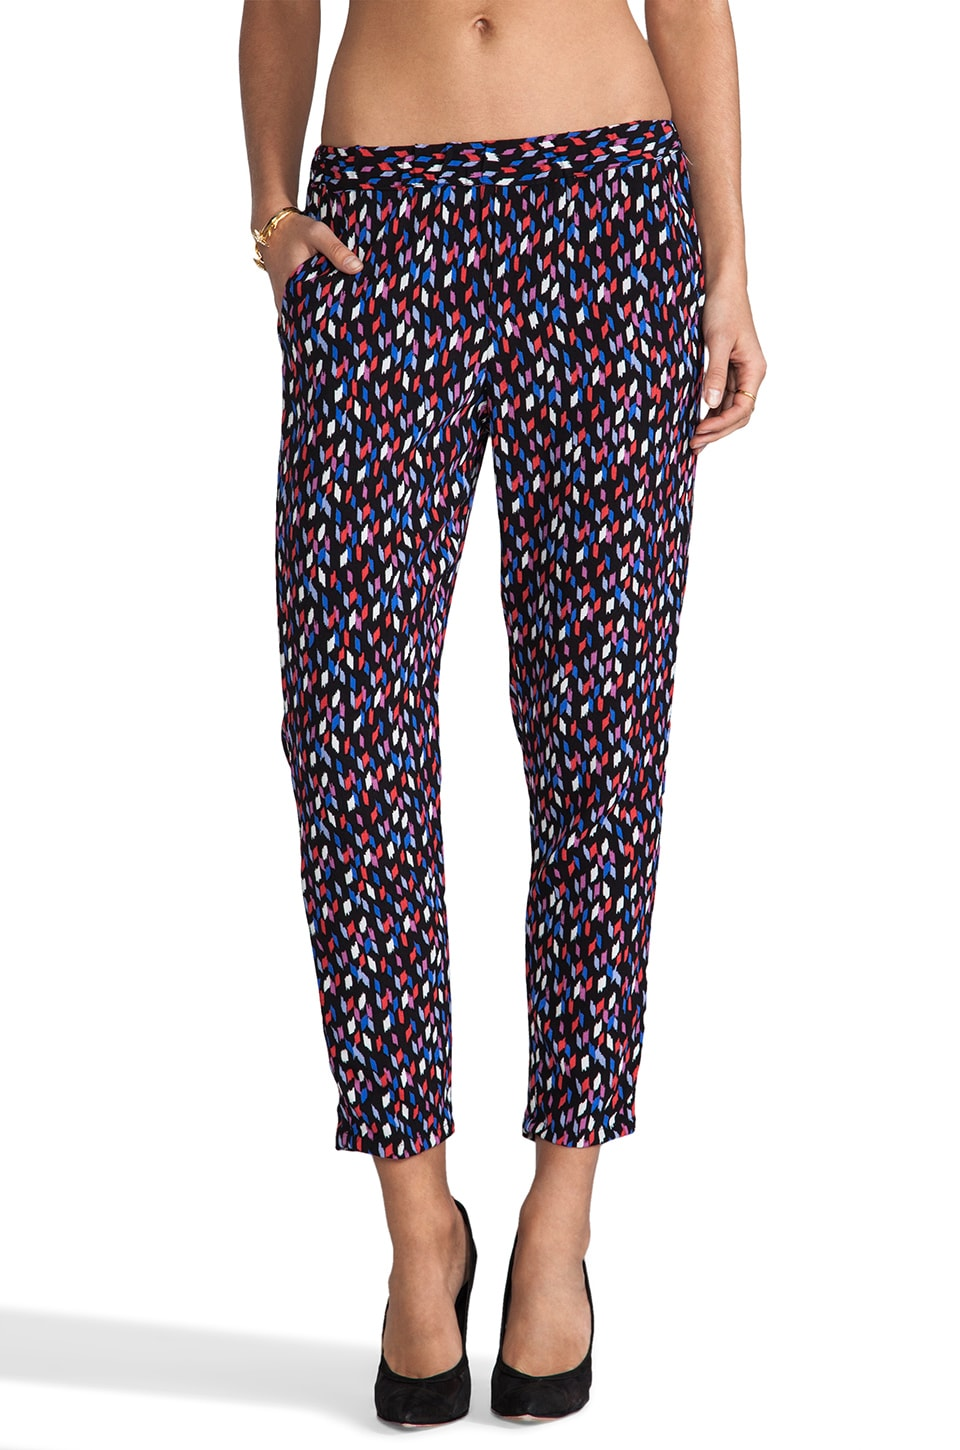 Ella Moss Lana Pant in Black